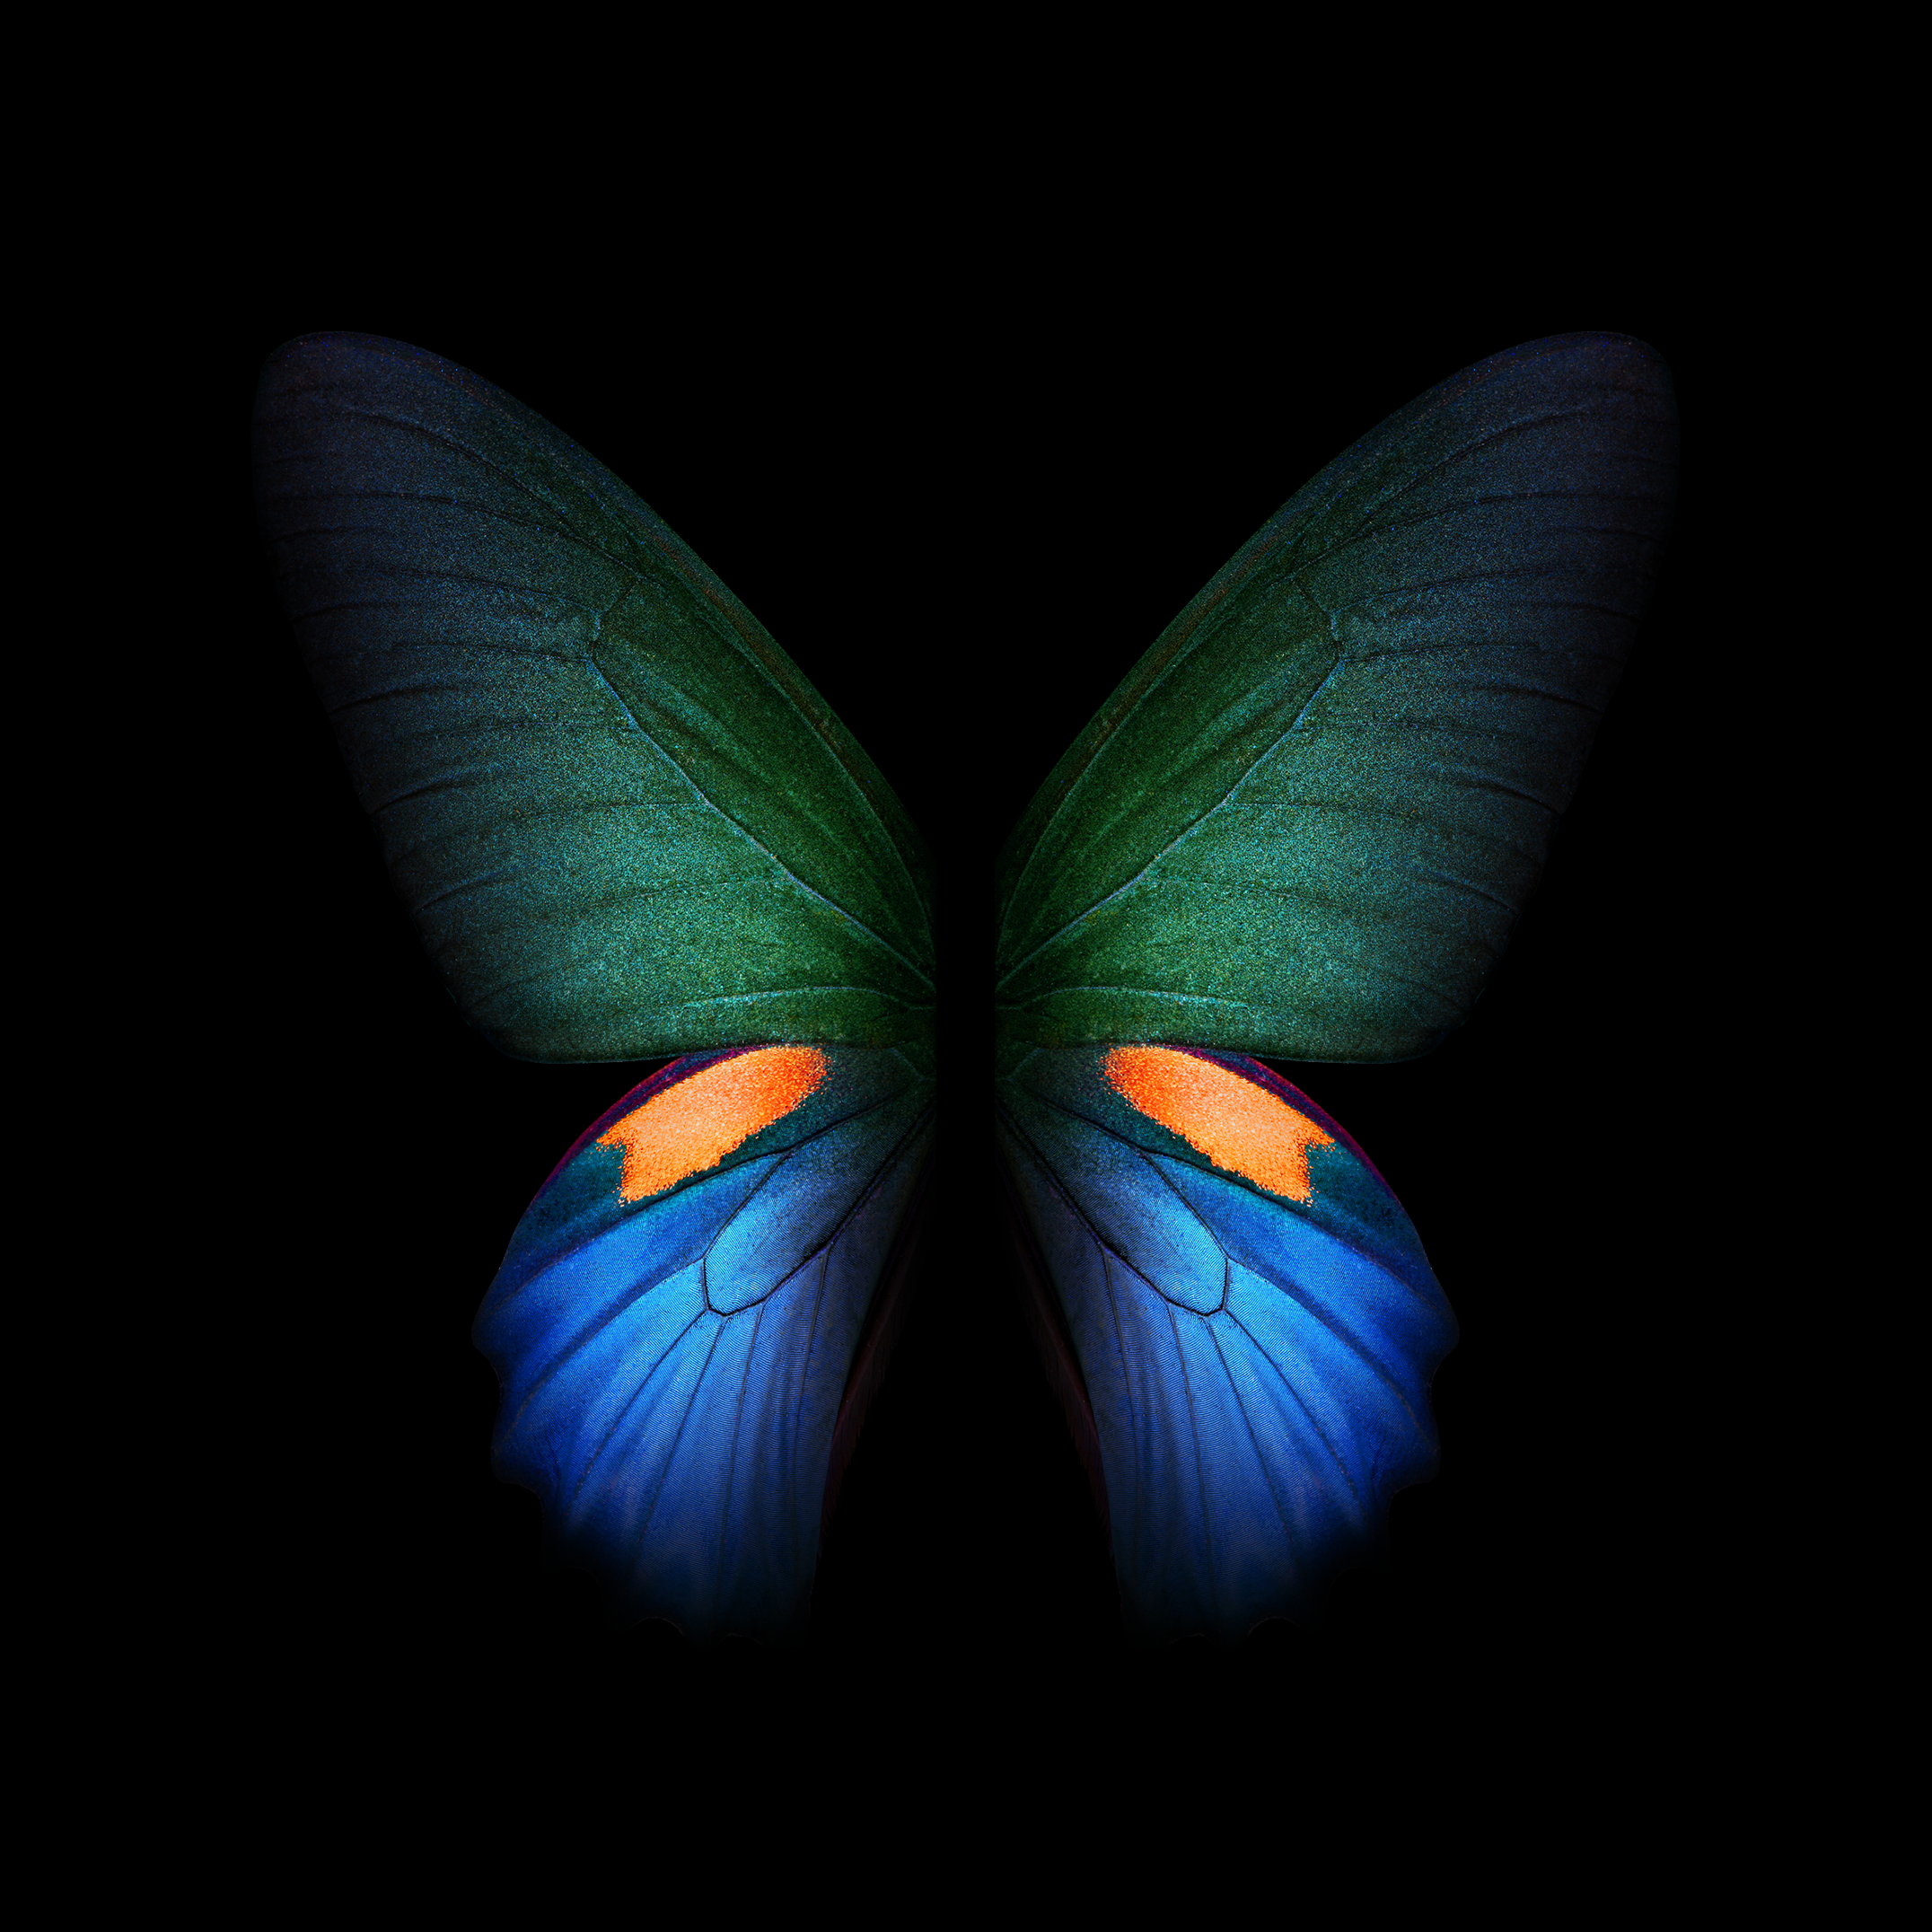 Samsung Galaxy A50 Wallpapers Posted By John Peltier